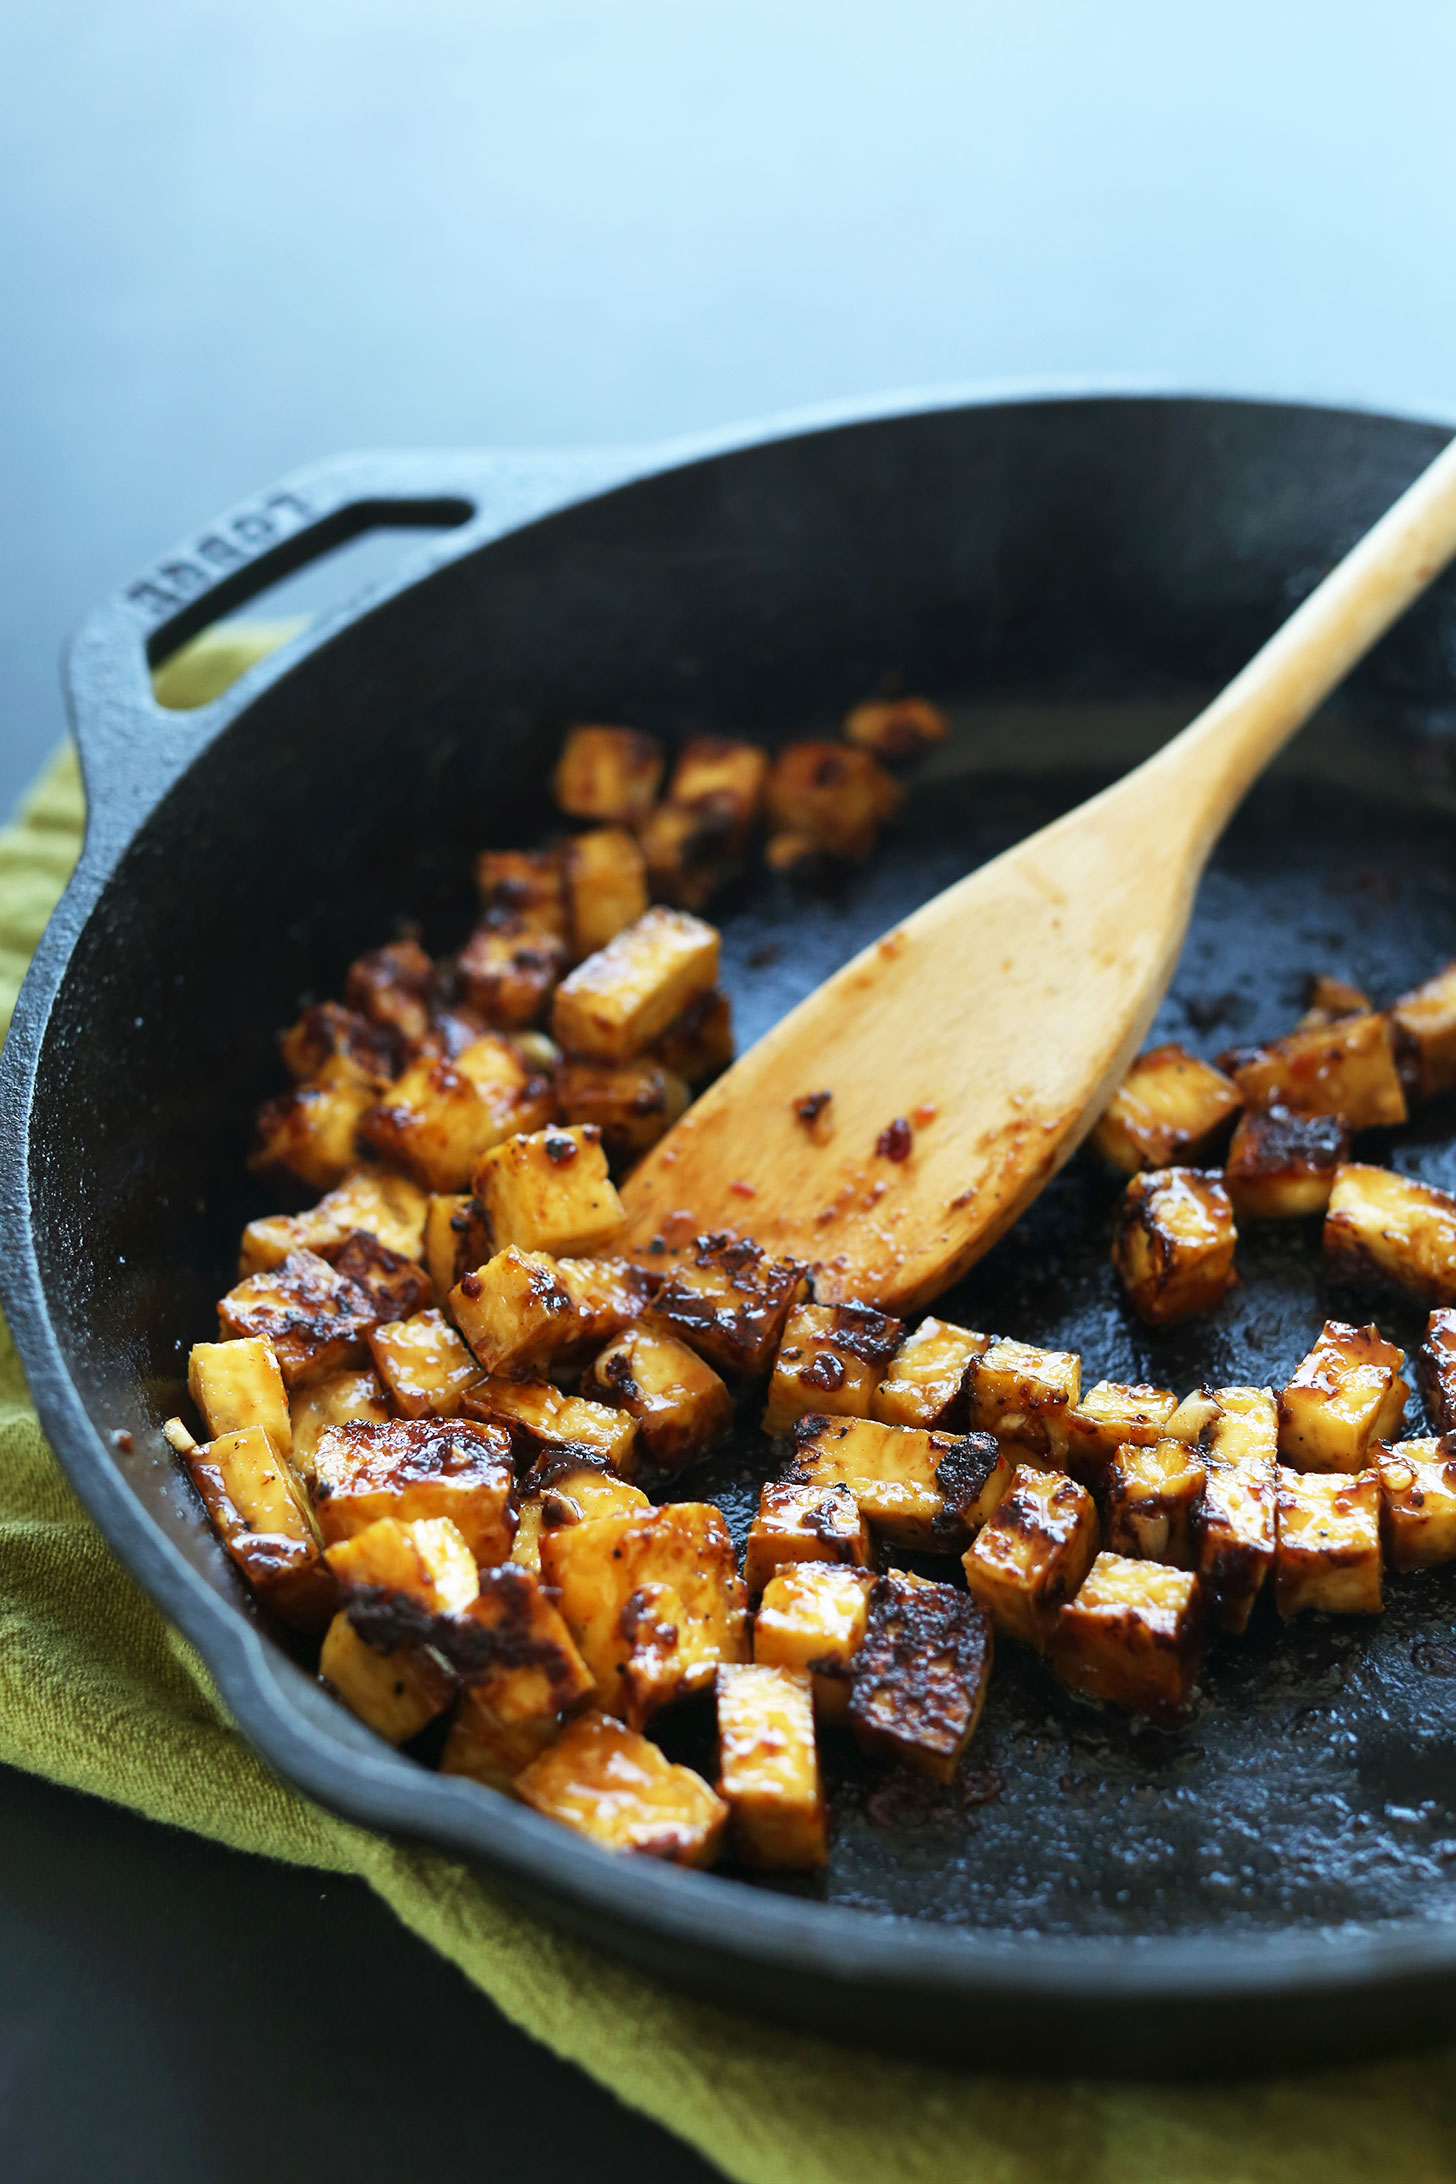 Easy Stir Fried Tofu Over Vegan Rice Savory Healthy And SO Satisfying